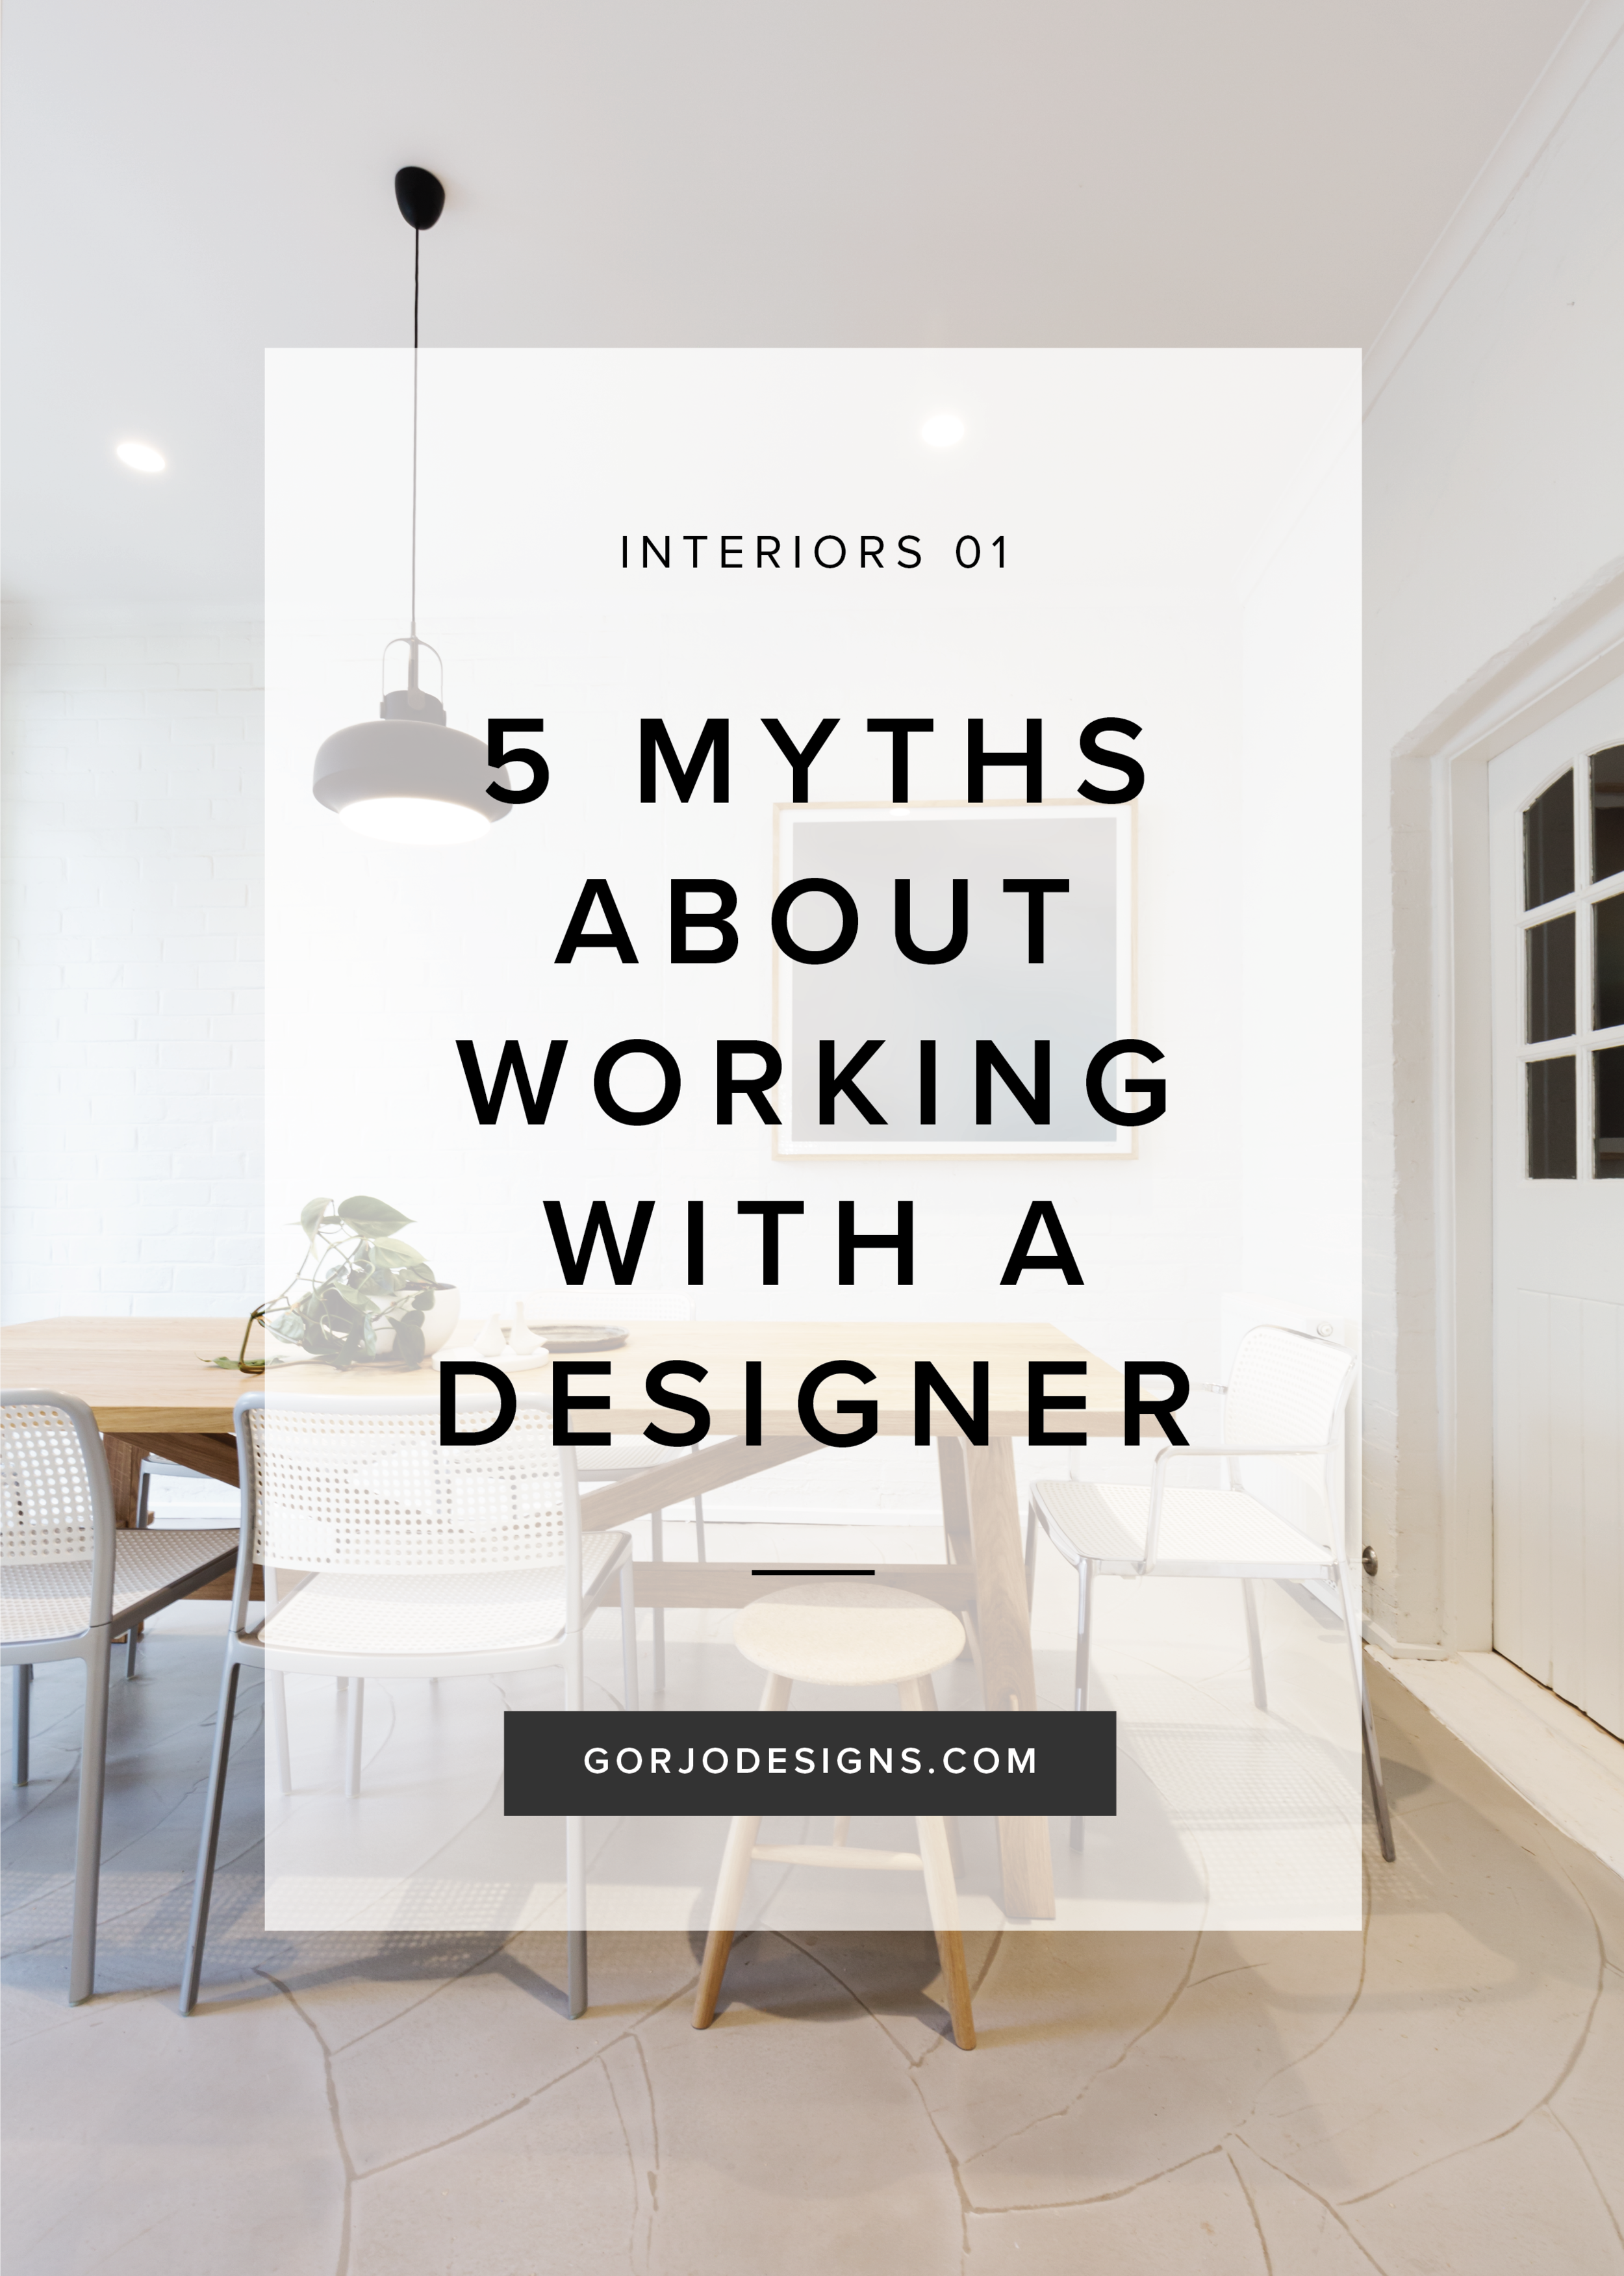 5 myths about working with a designer | Gorjo Designs blog